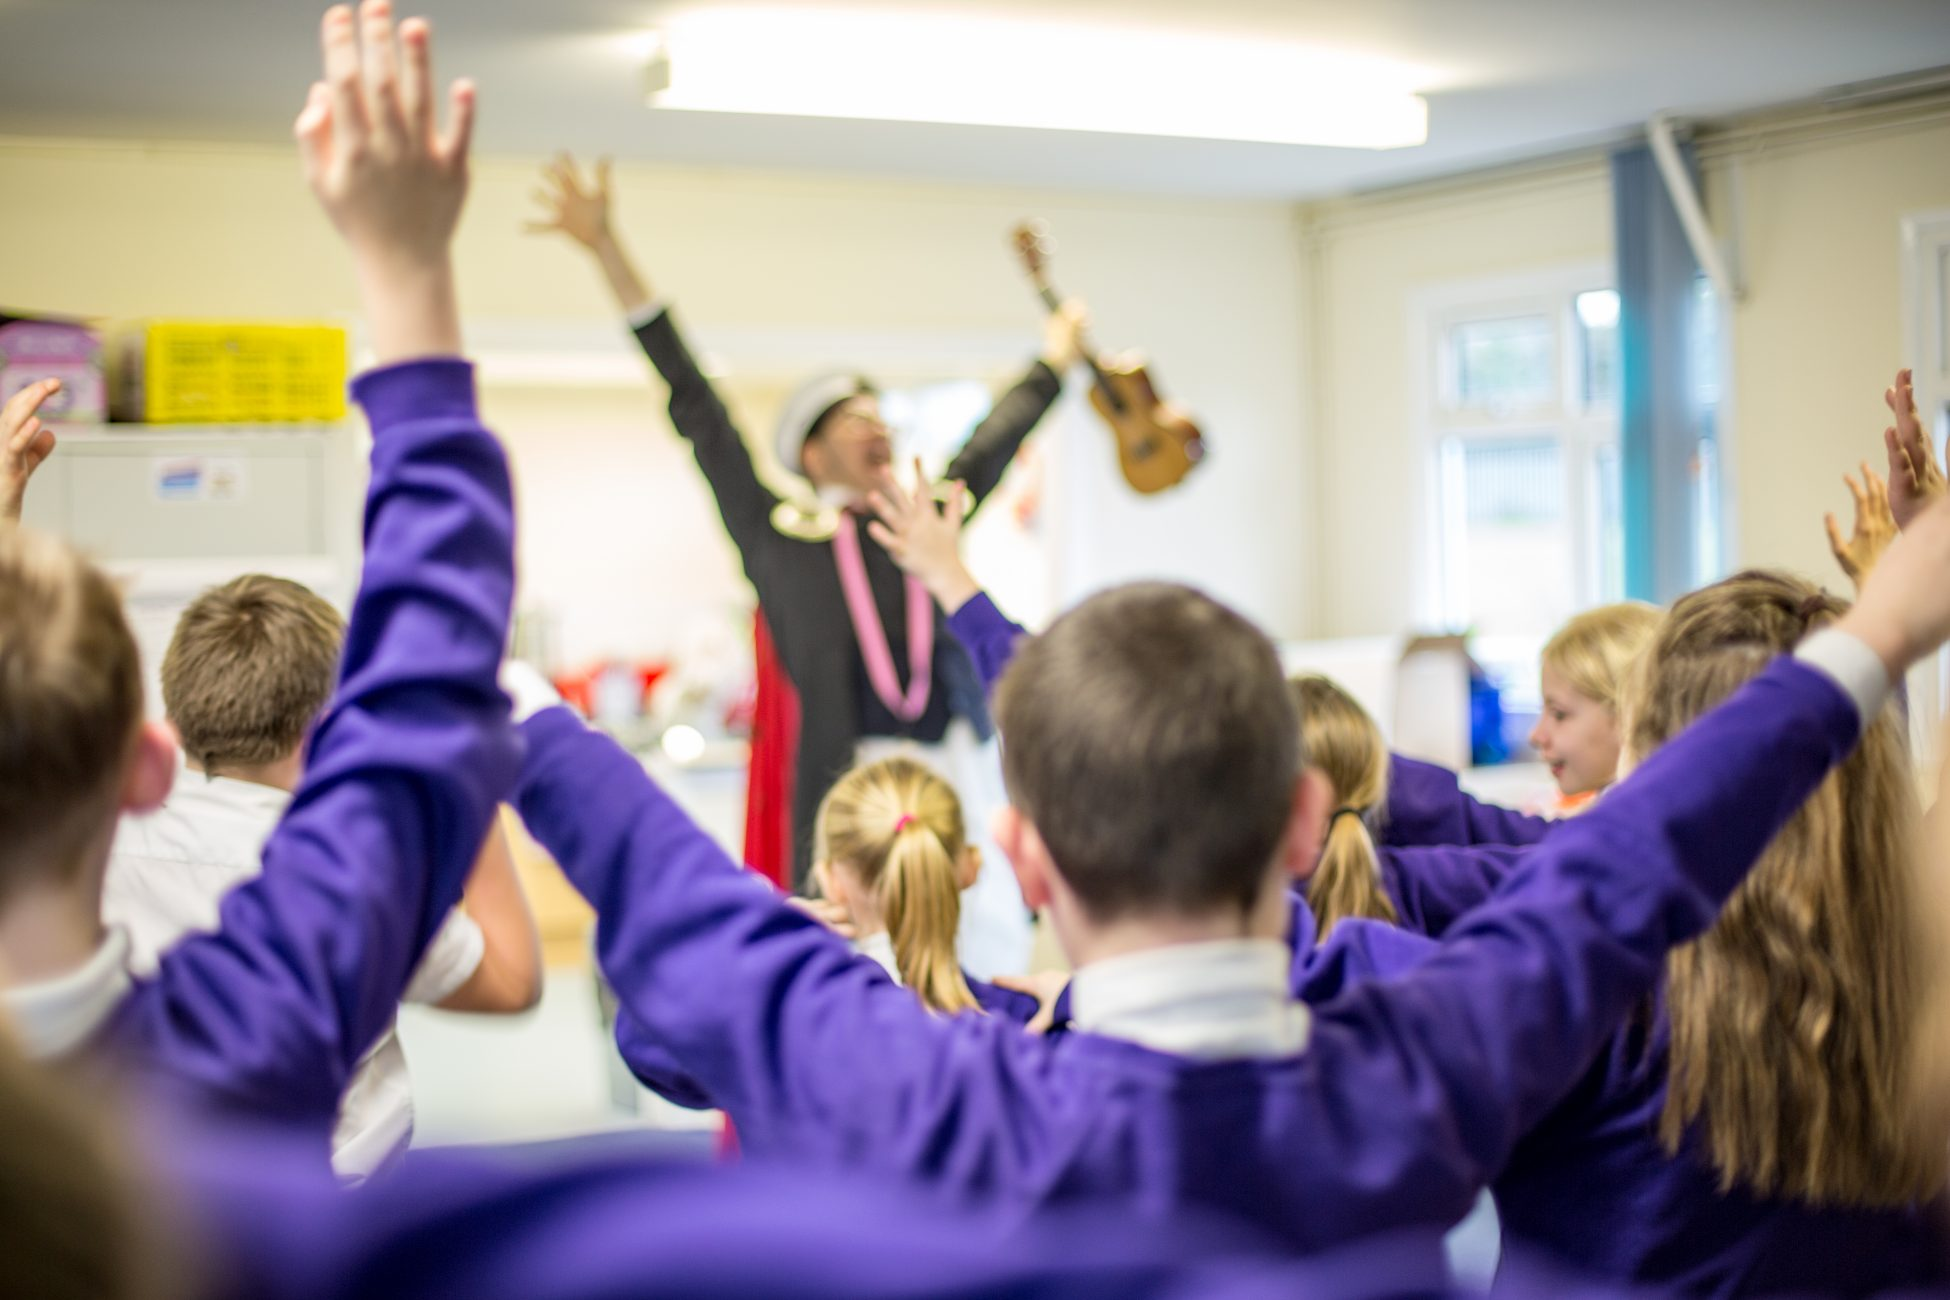 Photo showing a blurry man in a classroom holding a ukelele with his arms raised over his head. A group of children facing him are copying his movements.